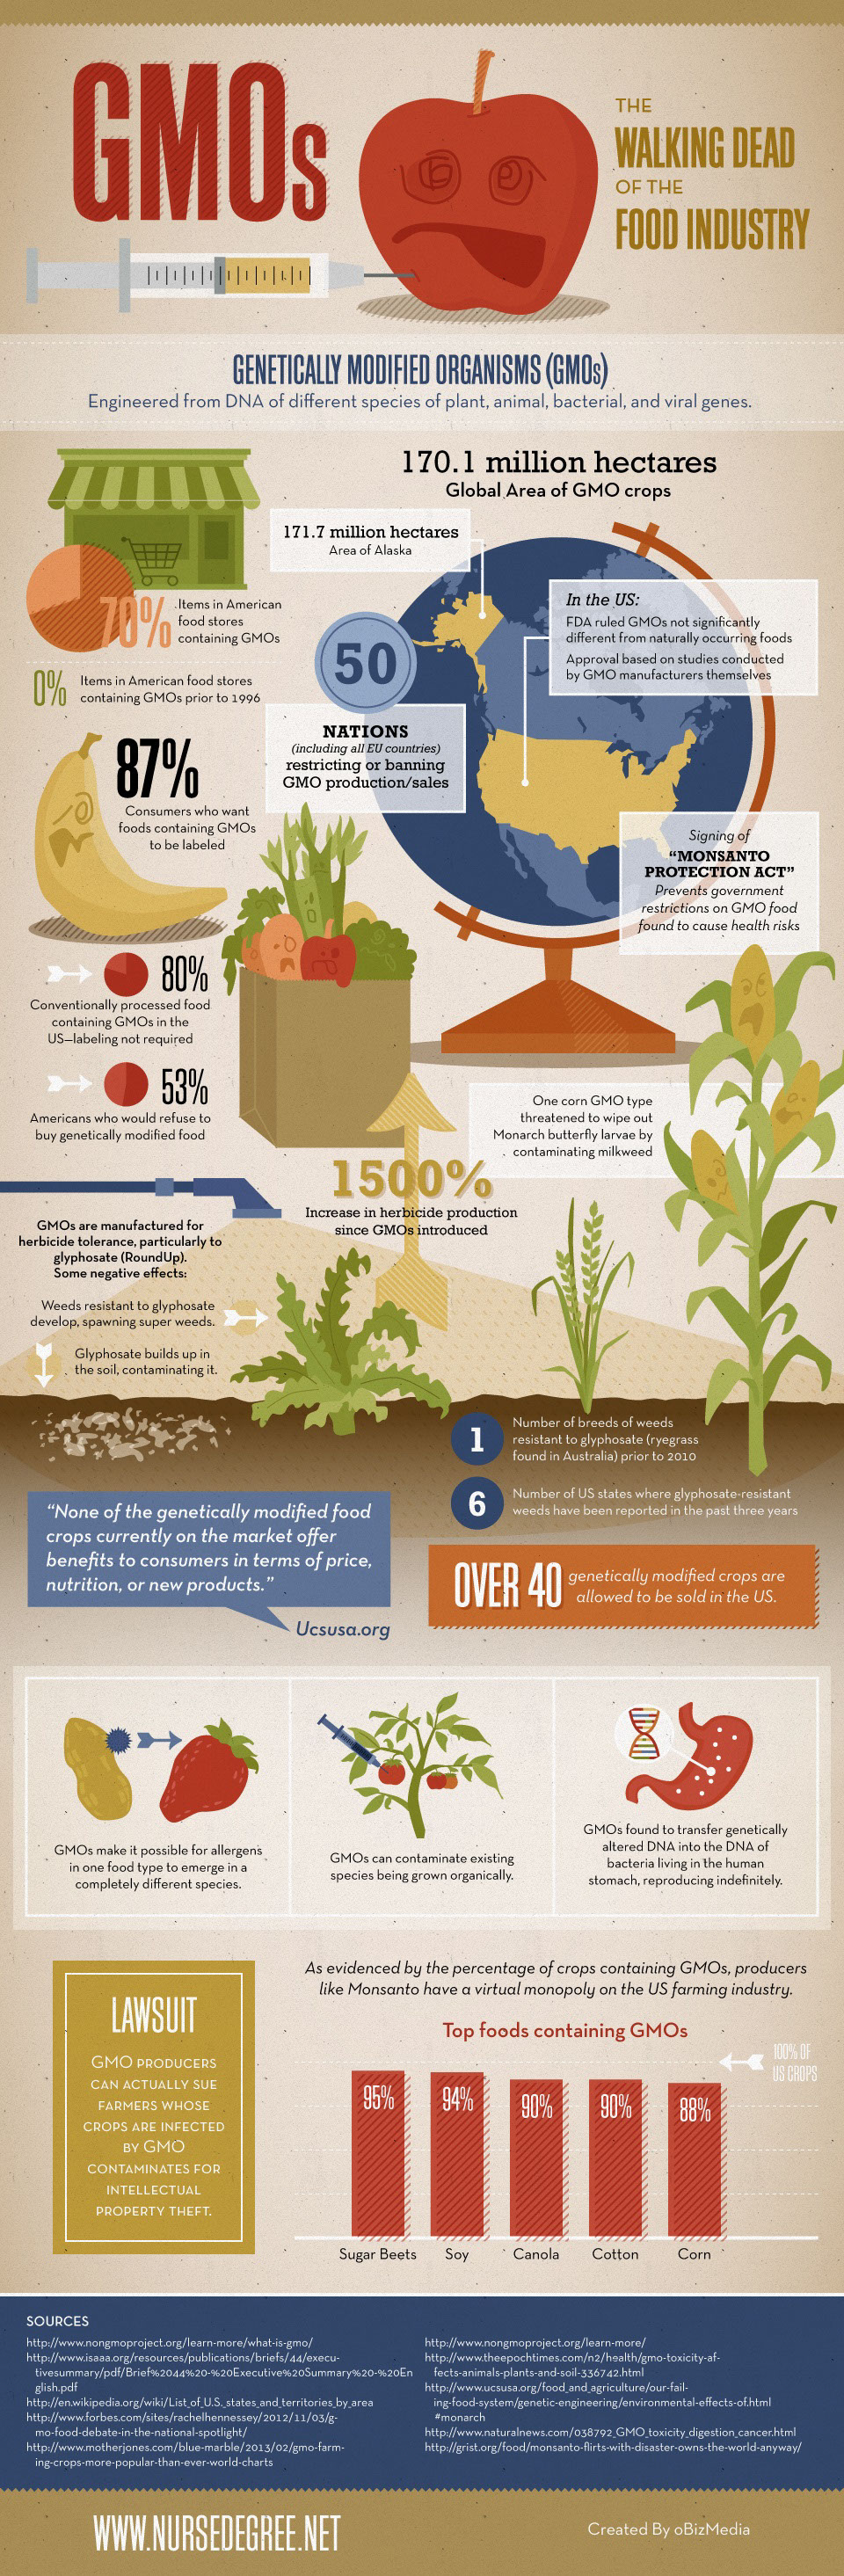 American GMO Stories-Infographic